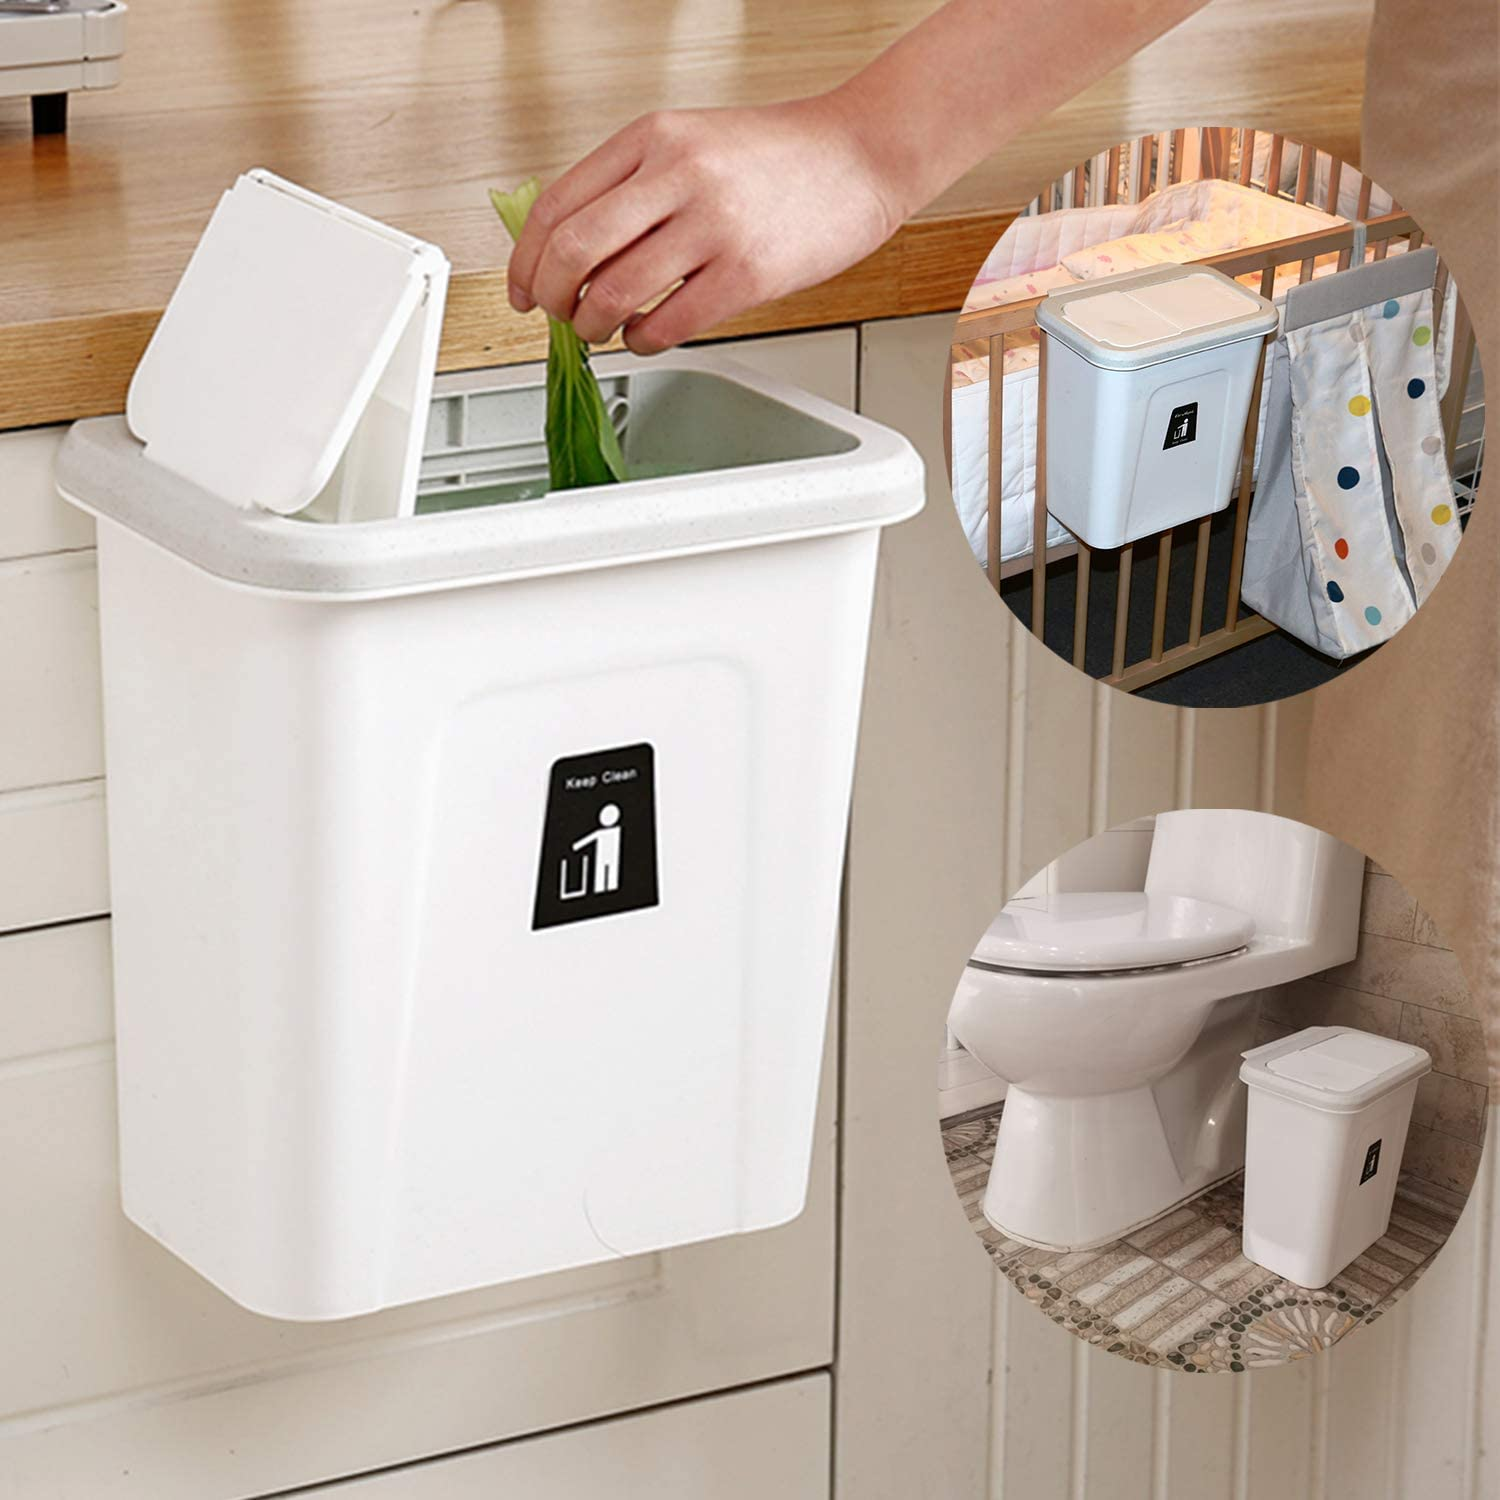 Amazon Com Karyhome Small Trash Can With Lid For Kitchen Cabinet Door Diaper Pail Hanging Garbage Can For Baby Crib And Narrow Spaces 2 6 Gallon White Home Kitchen